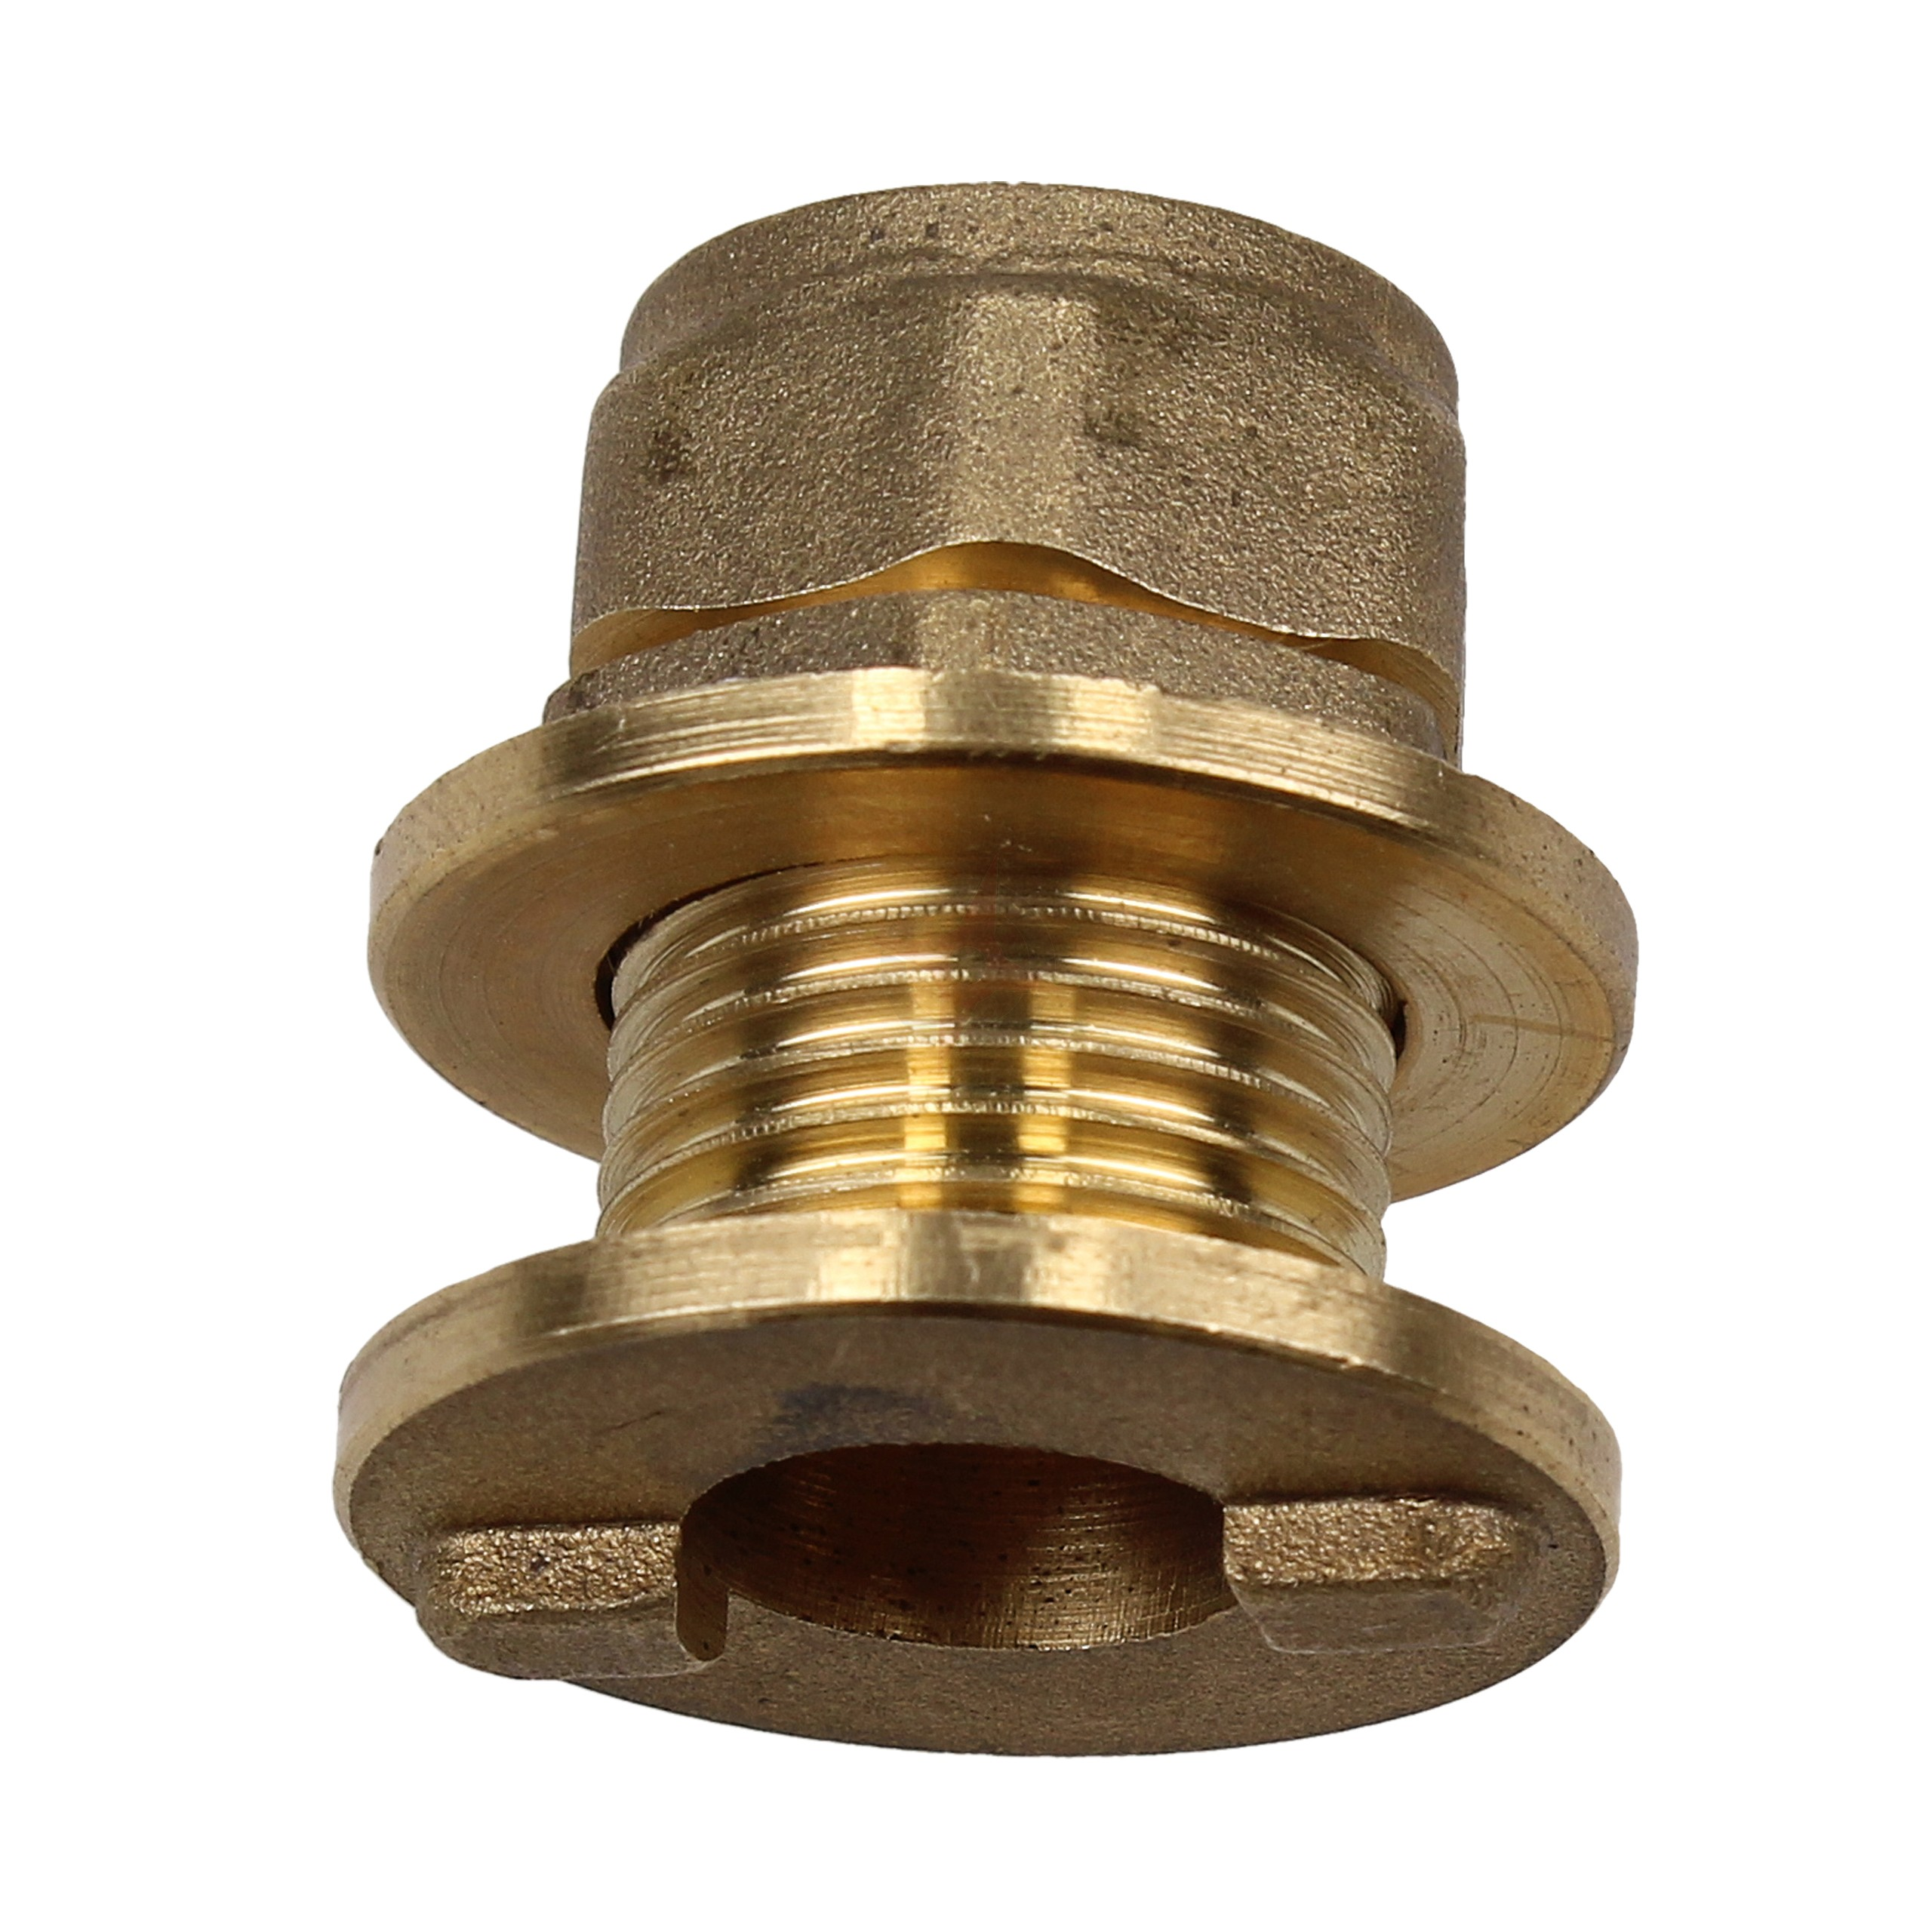 Compression 15mm Tank Connector